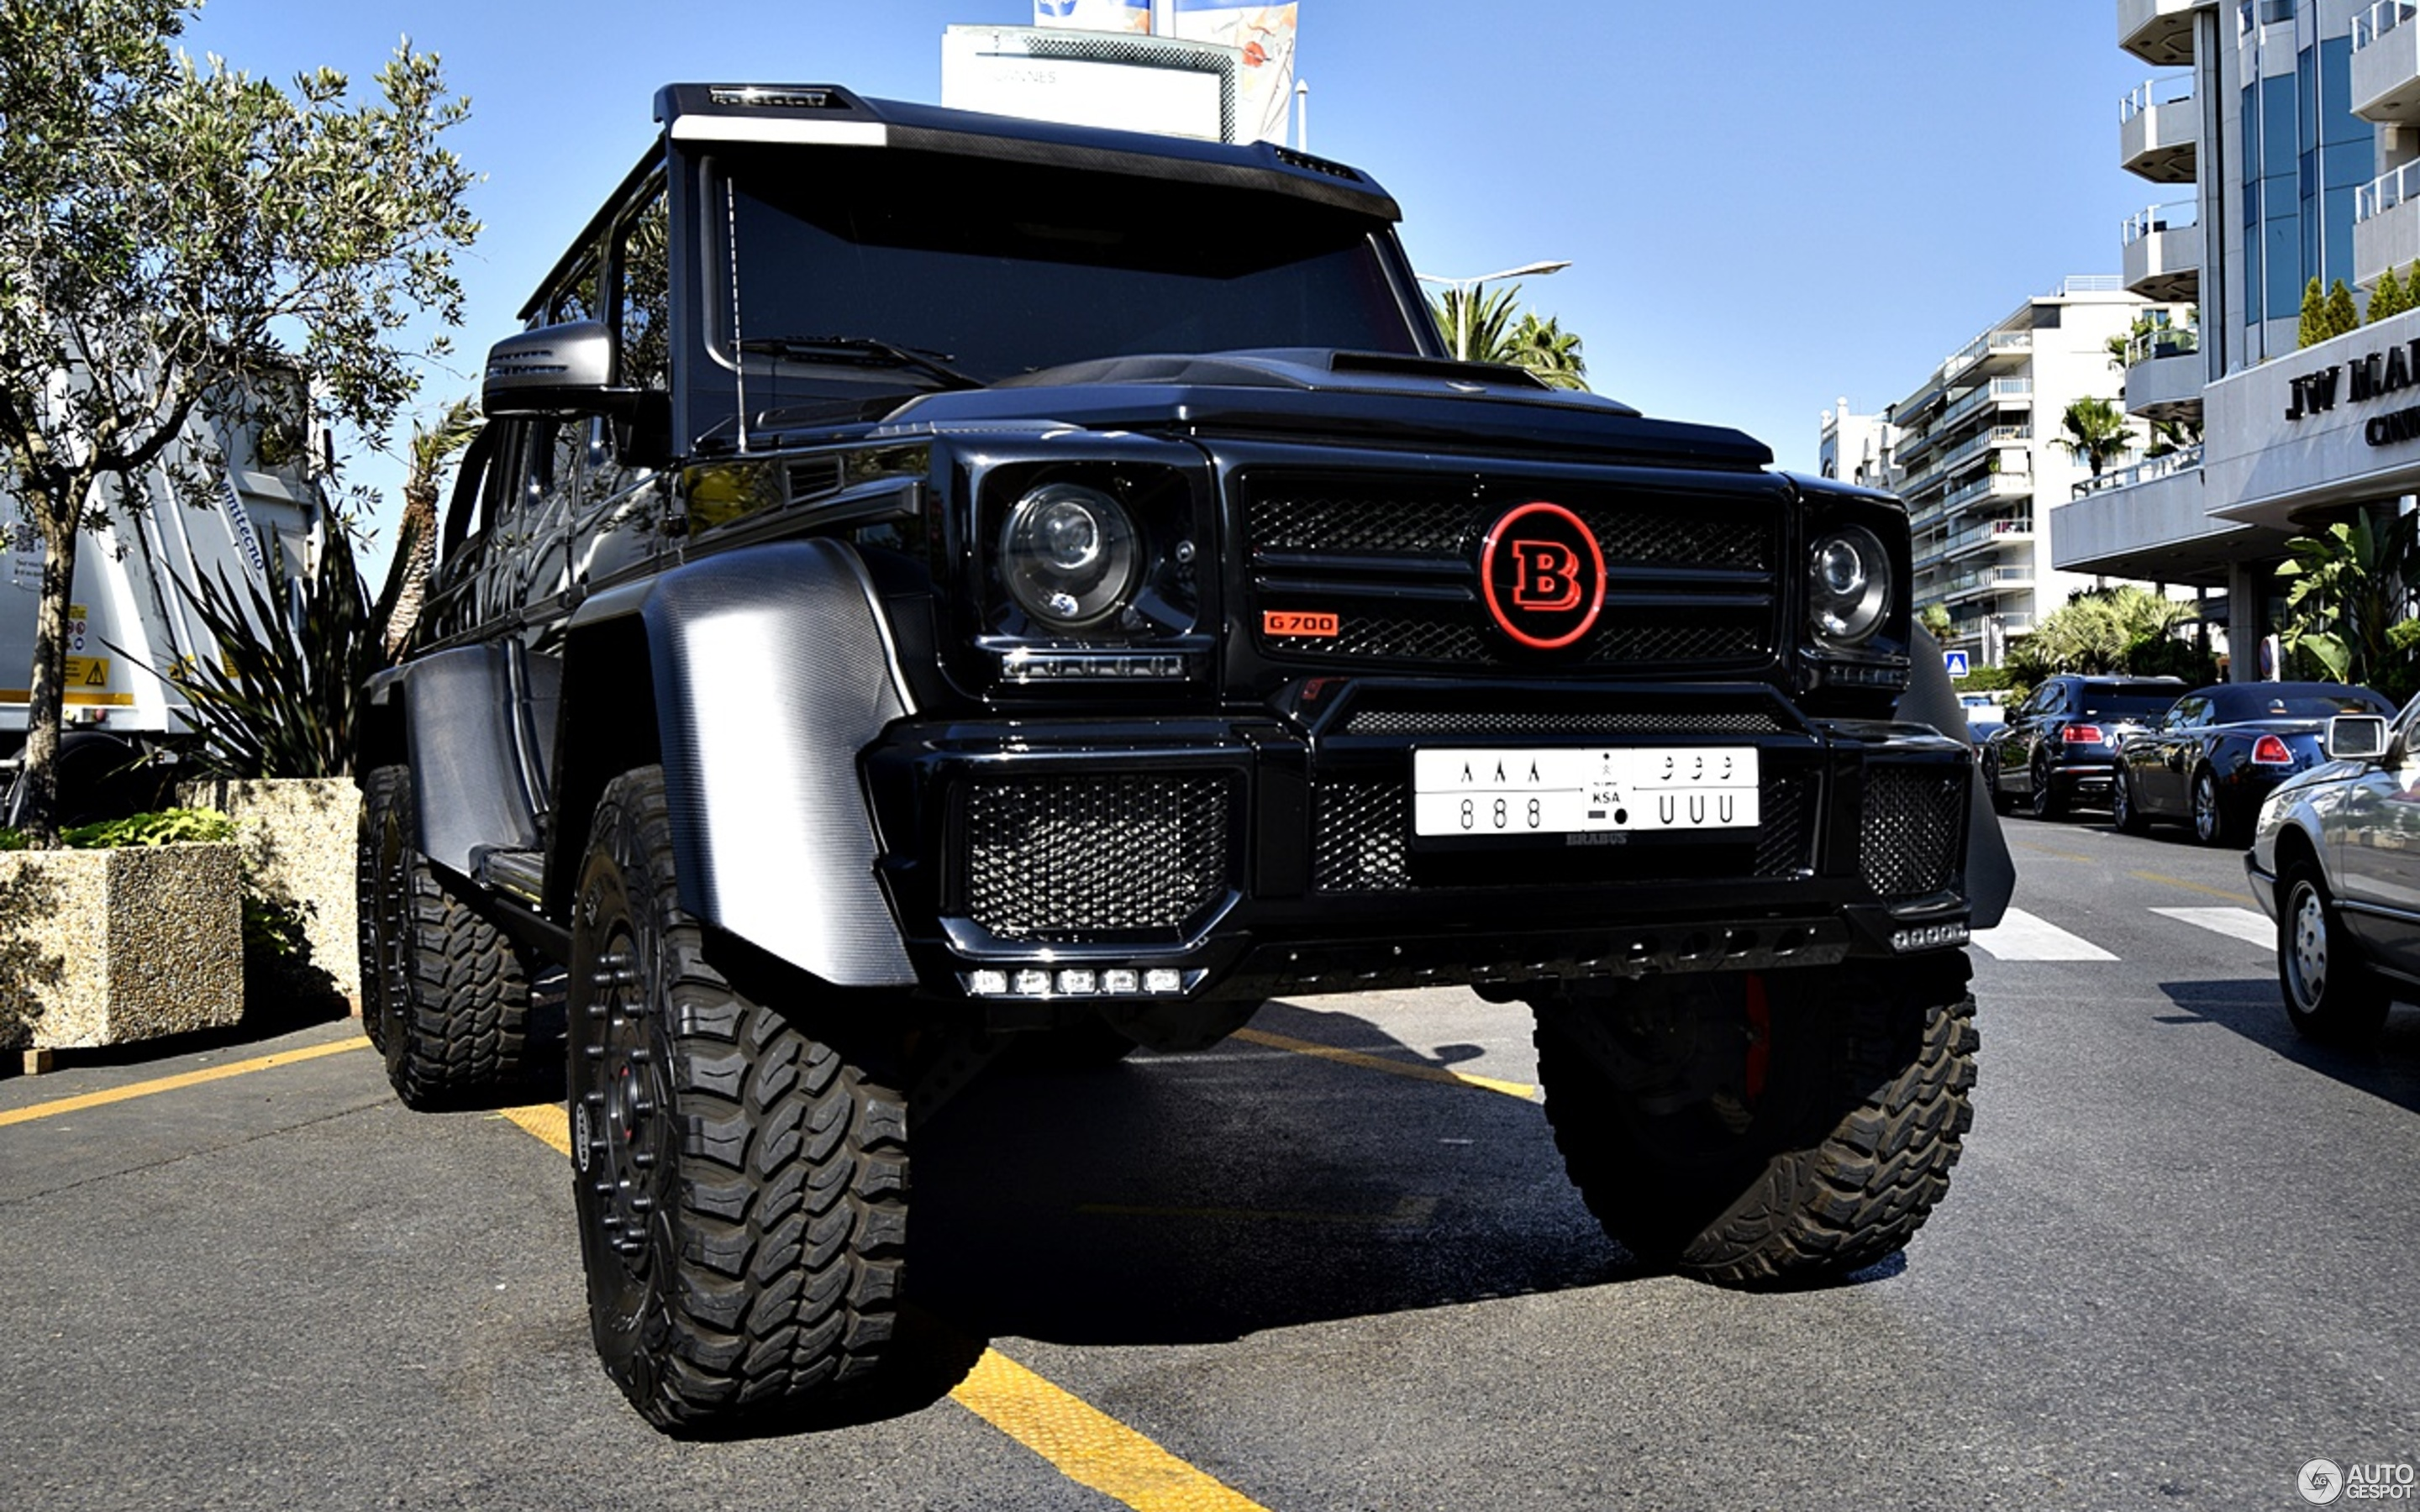 63 Power Wagon >> Mercedes-Benz Brabus B63S 700 6x6 - 23 January 2018 - Autogespot